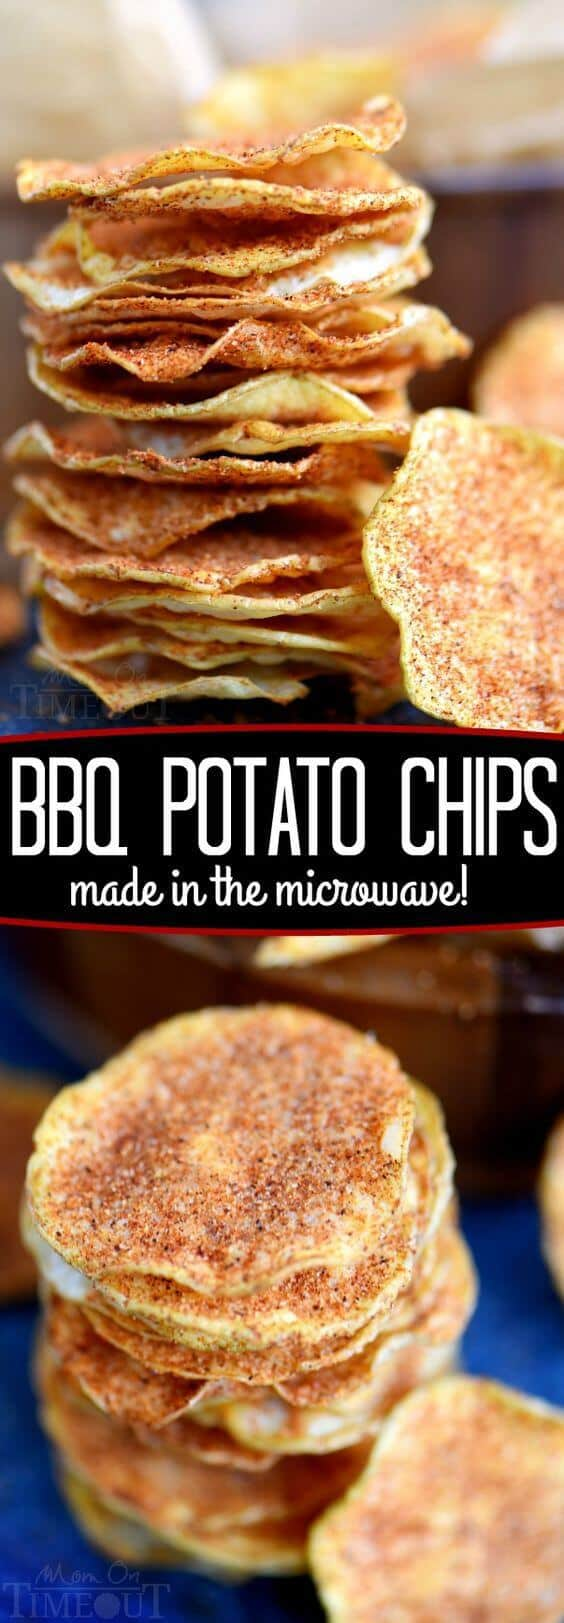 Microwave BBQ Potato Chips Recipe